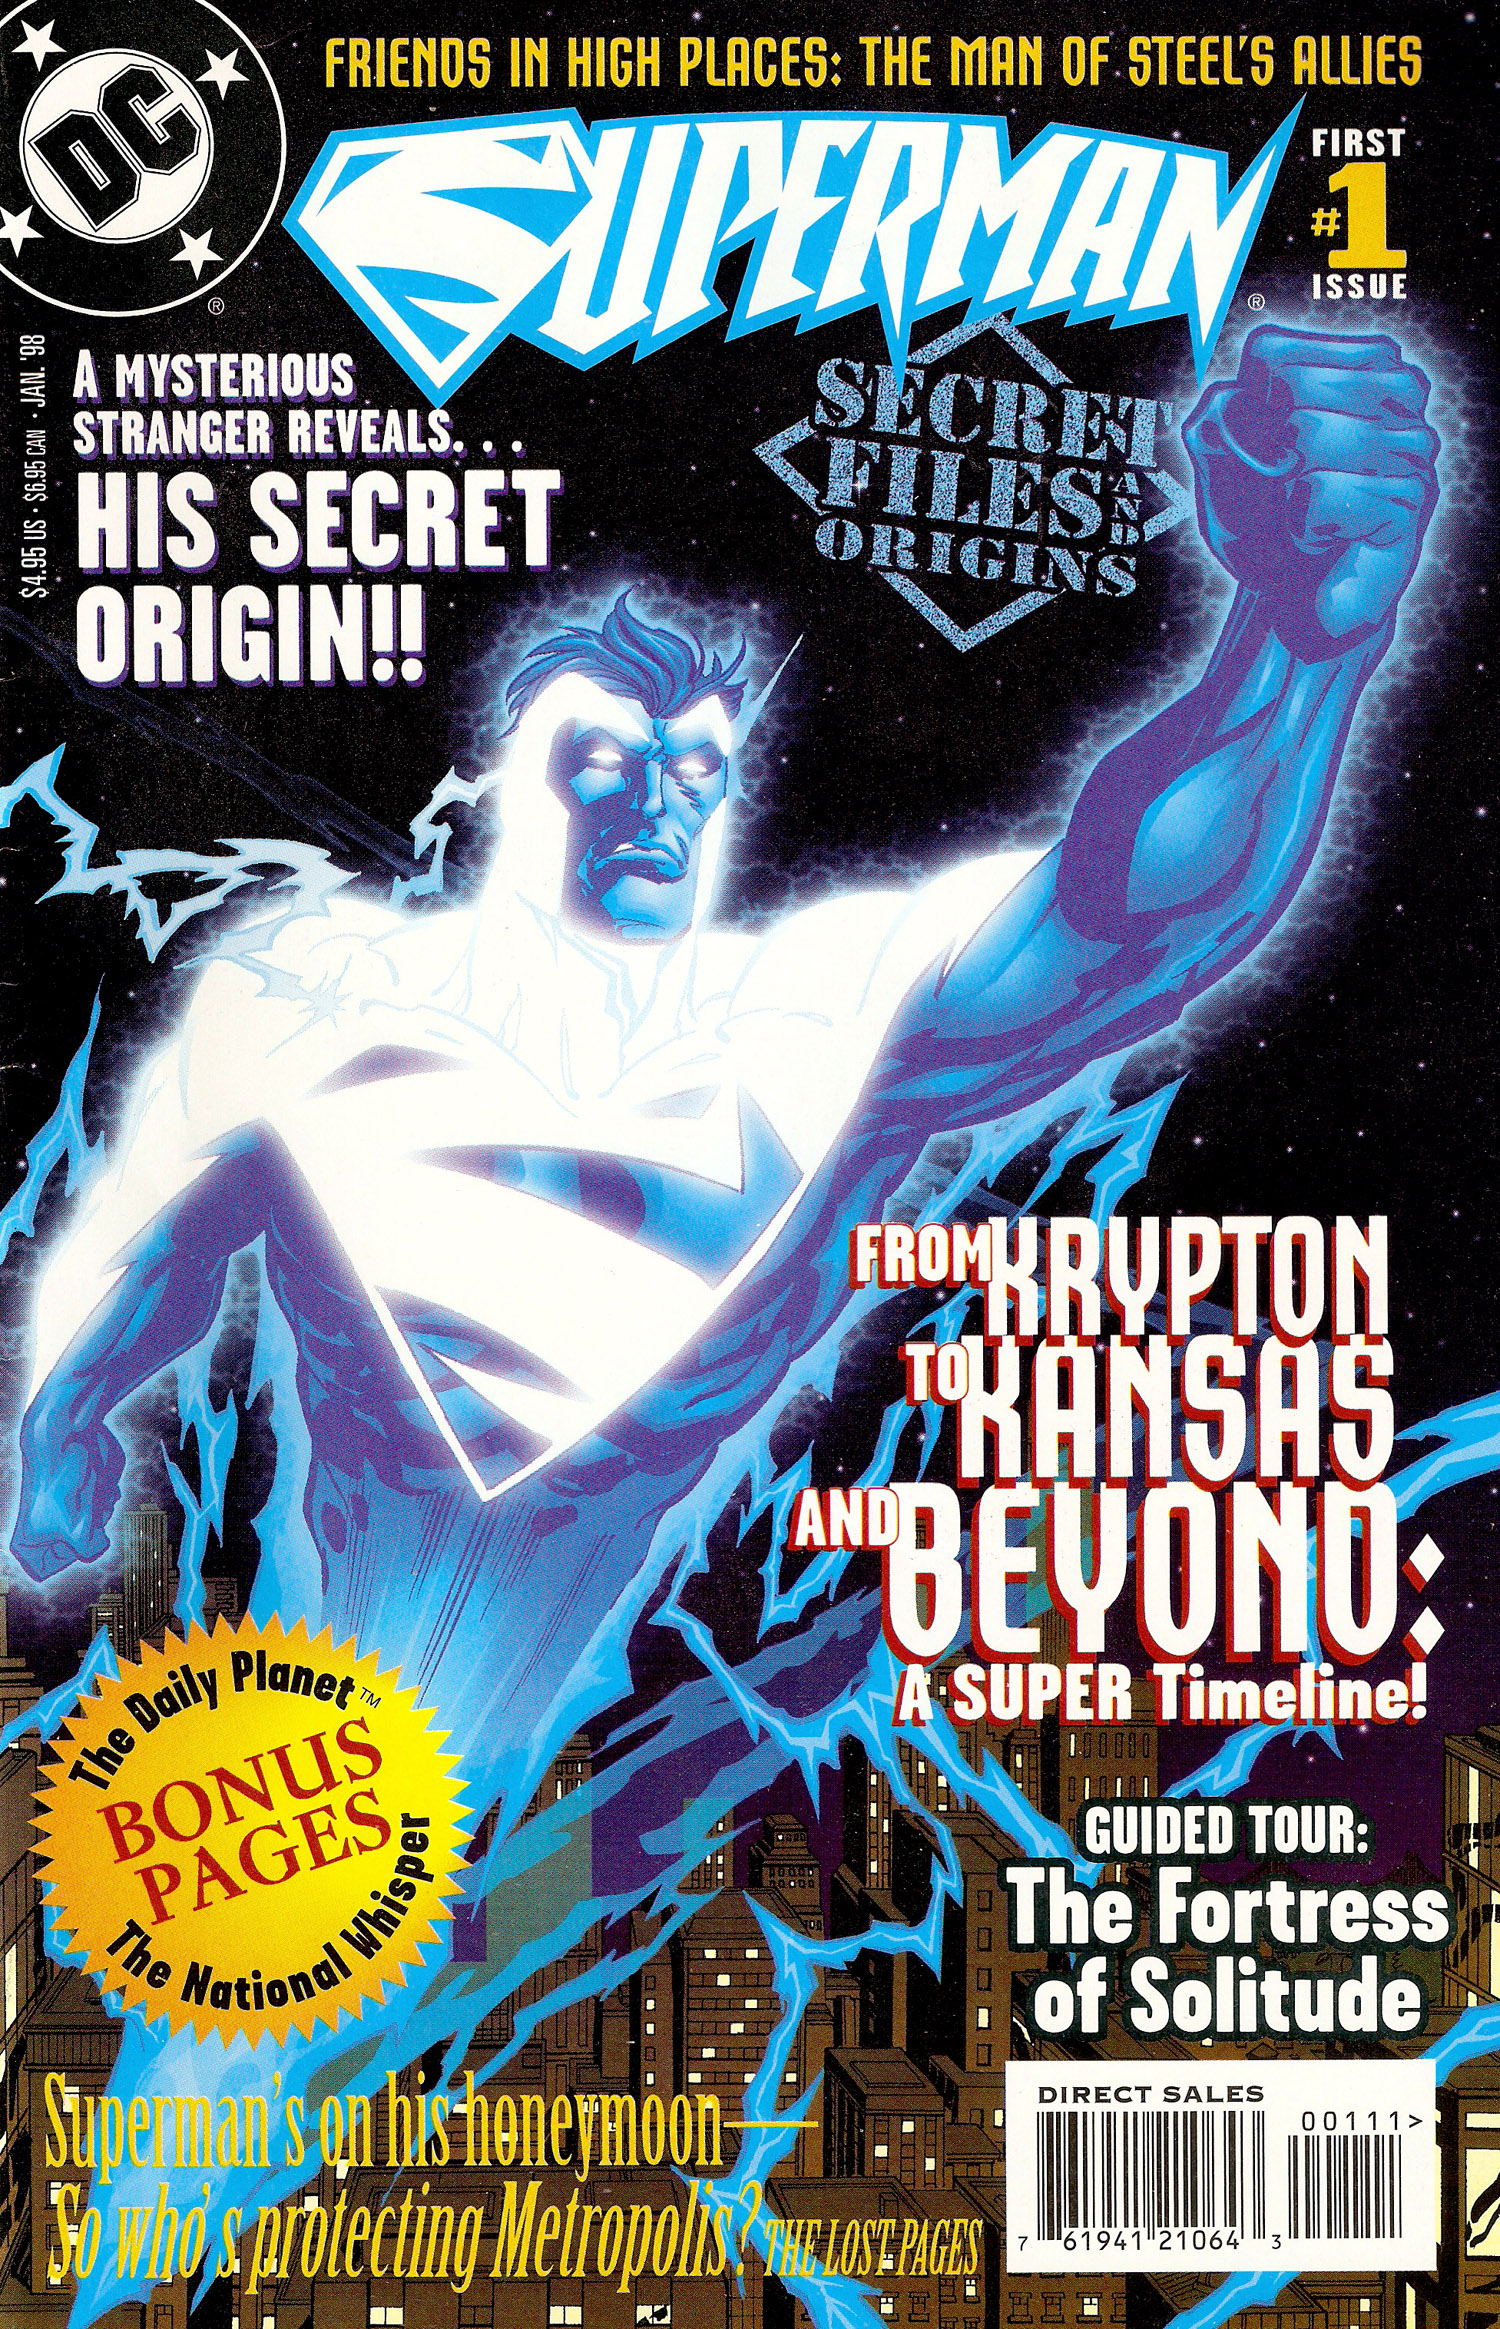 Secret Files 1998 - 00 Cover